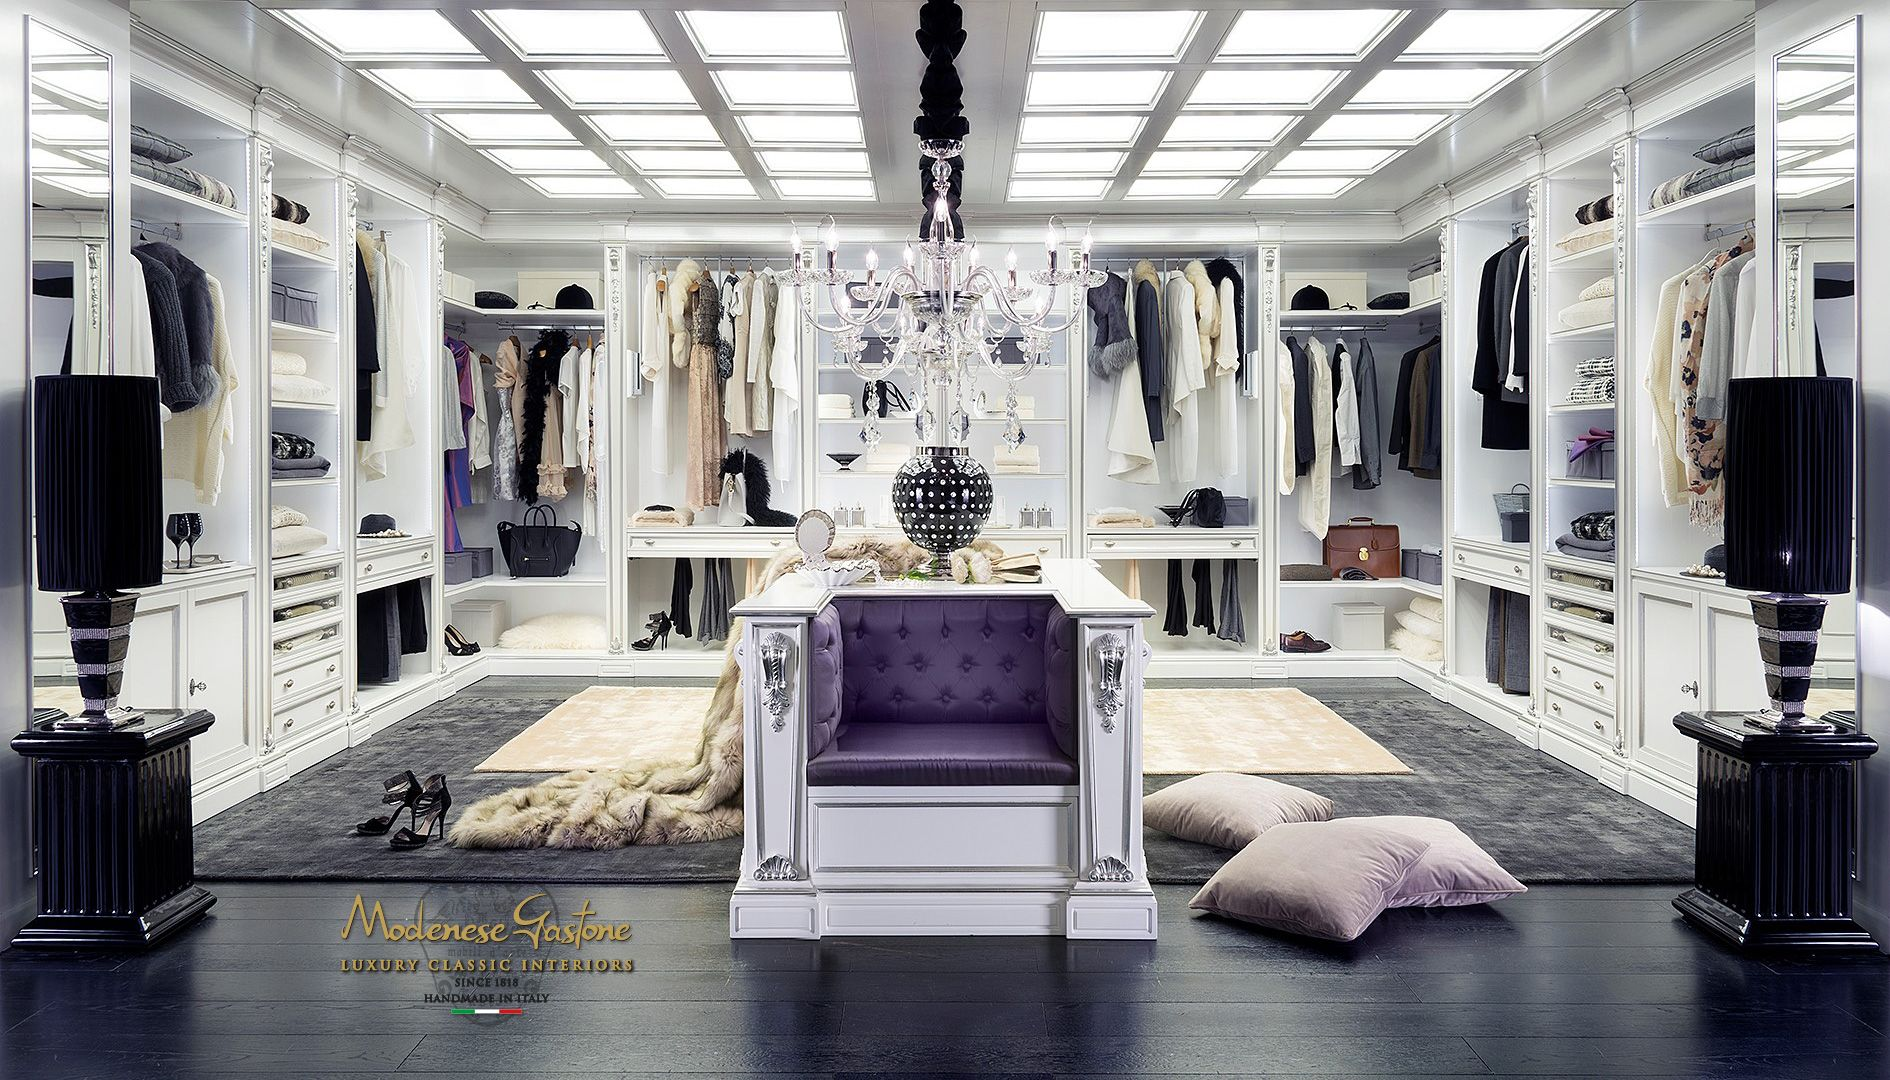 High End Walk-in Closet Design For large Room – Classic Italian ...